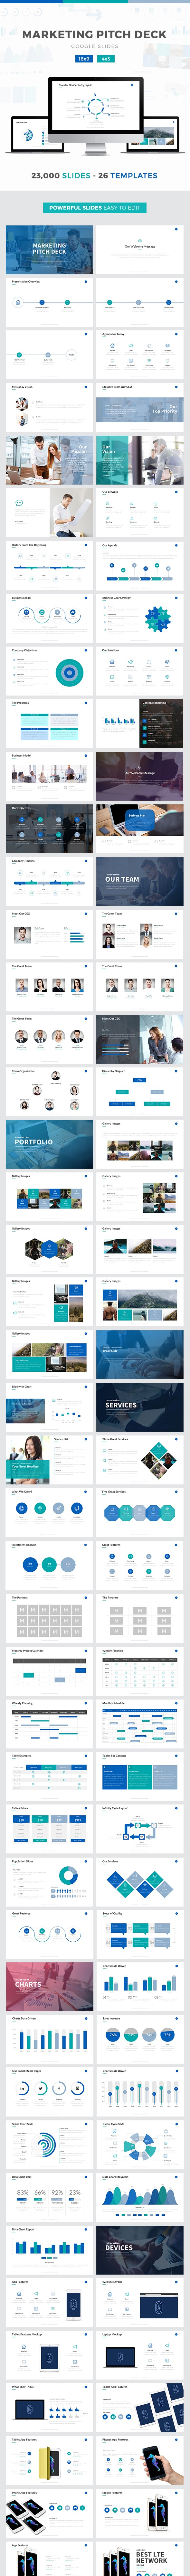 Marketing Pitch Deck Google Slides Template - Google Slides Presentation Templates